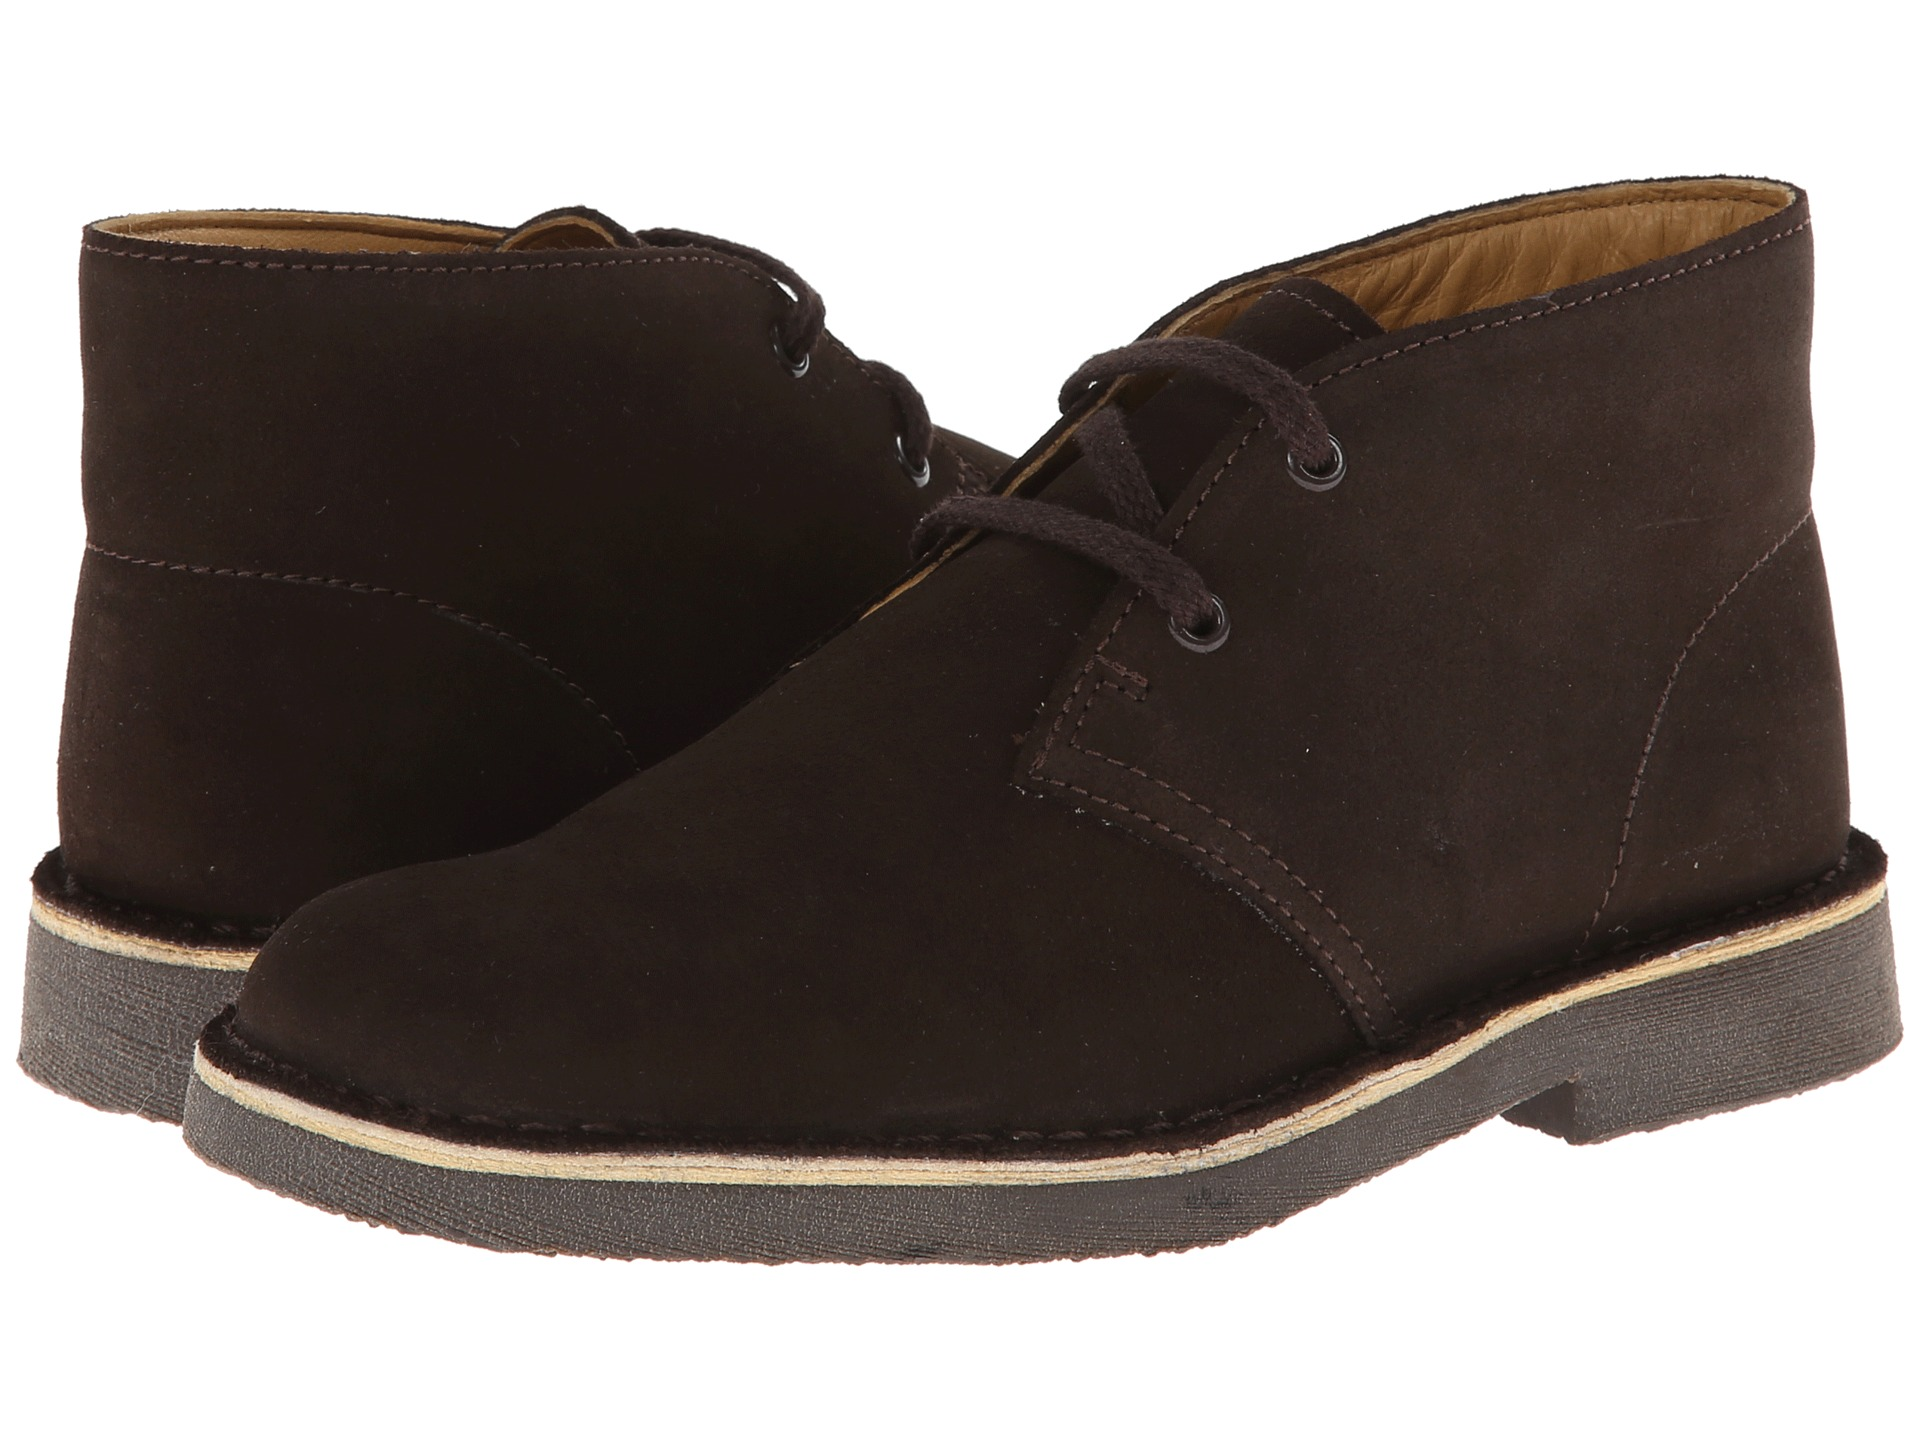 Jul 27, · Clarks Kids Shoes Gloforms 30 secs, Cert U. This feature is not available right now. Please try again later.